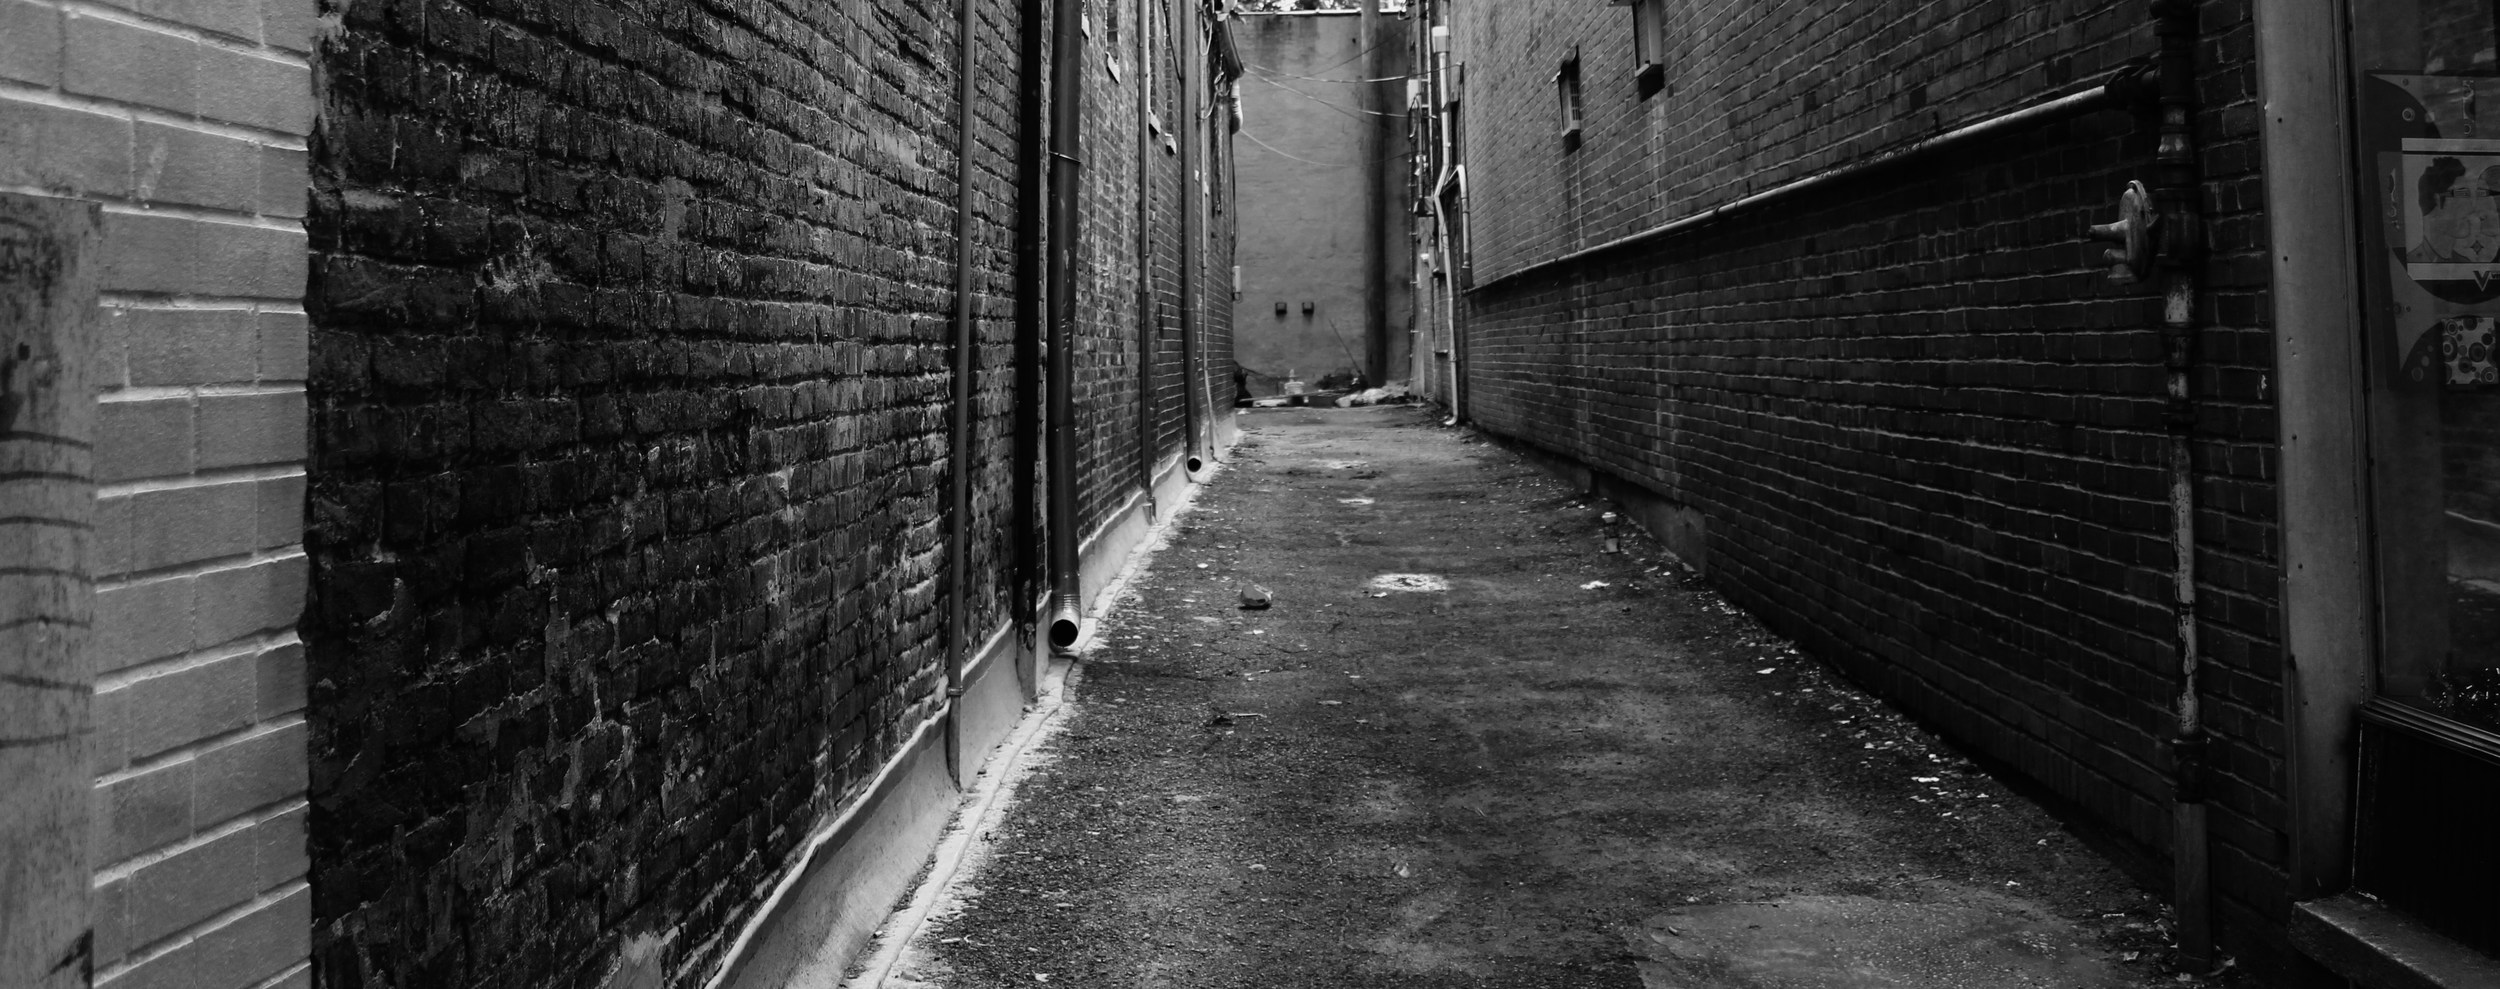 Alley to Nowhere